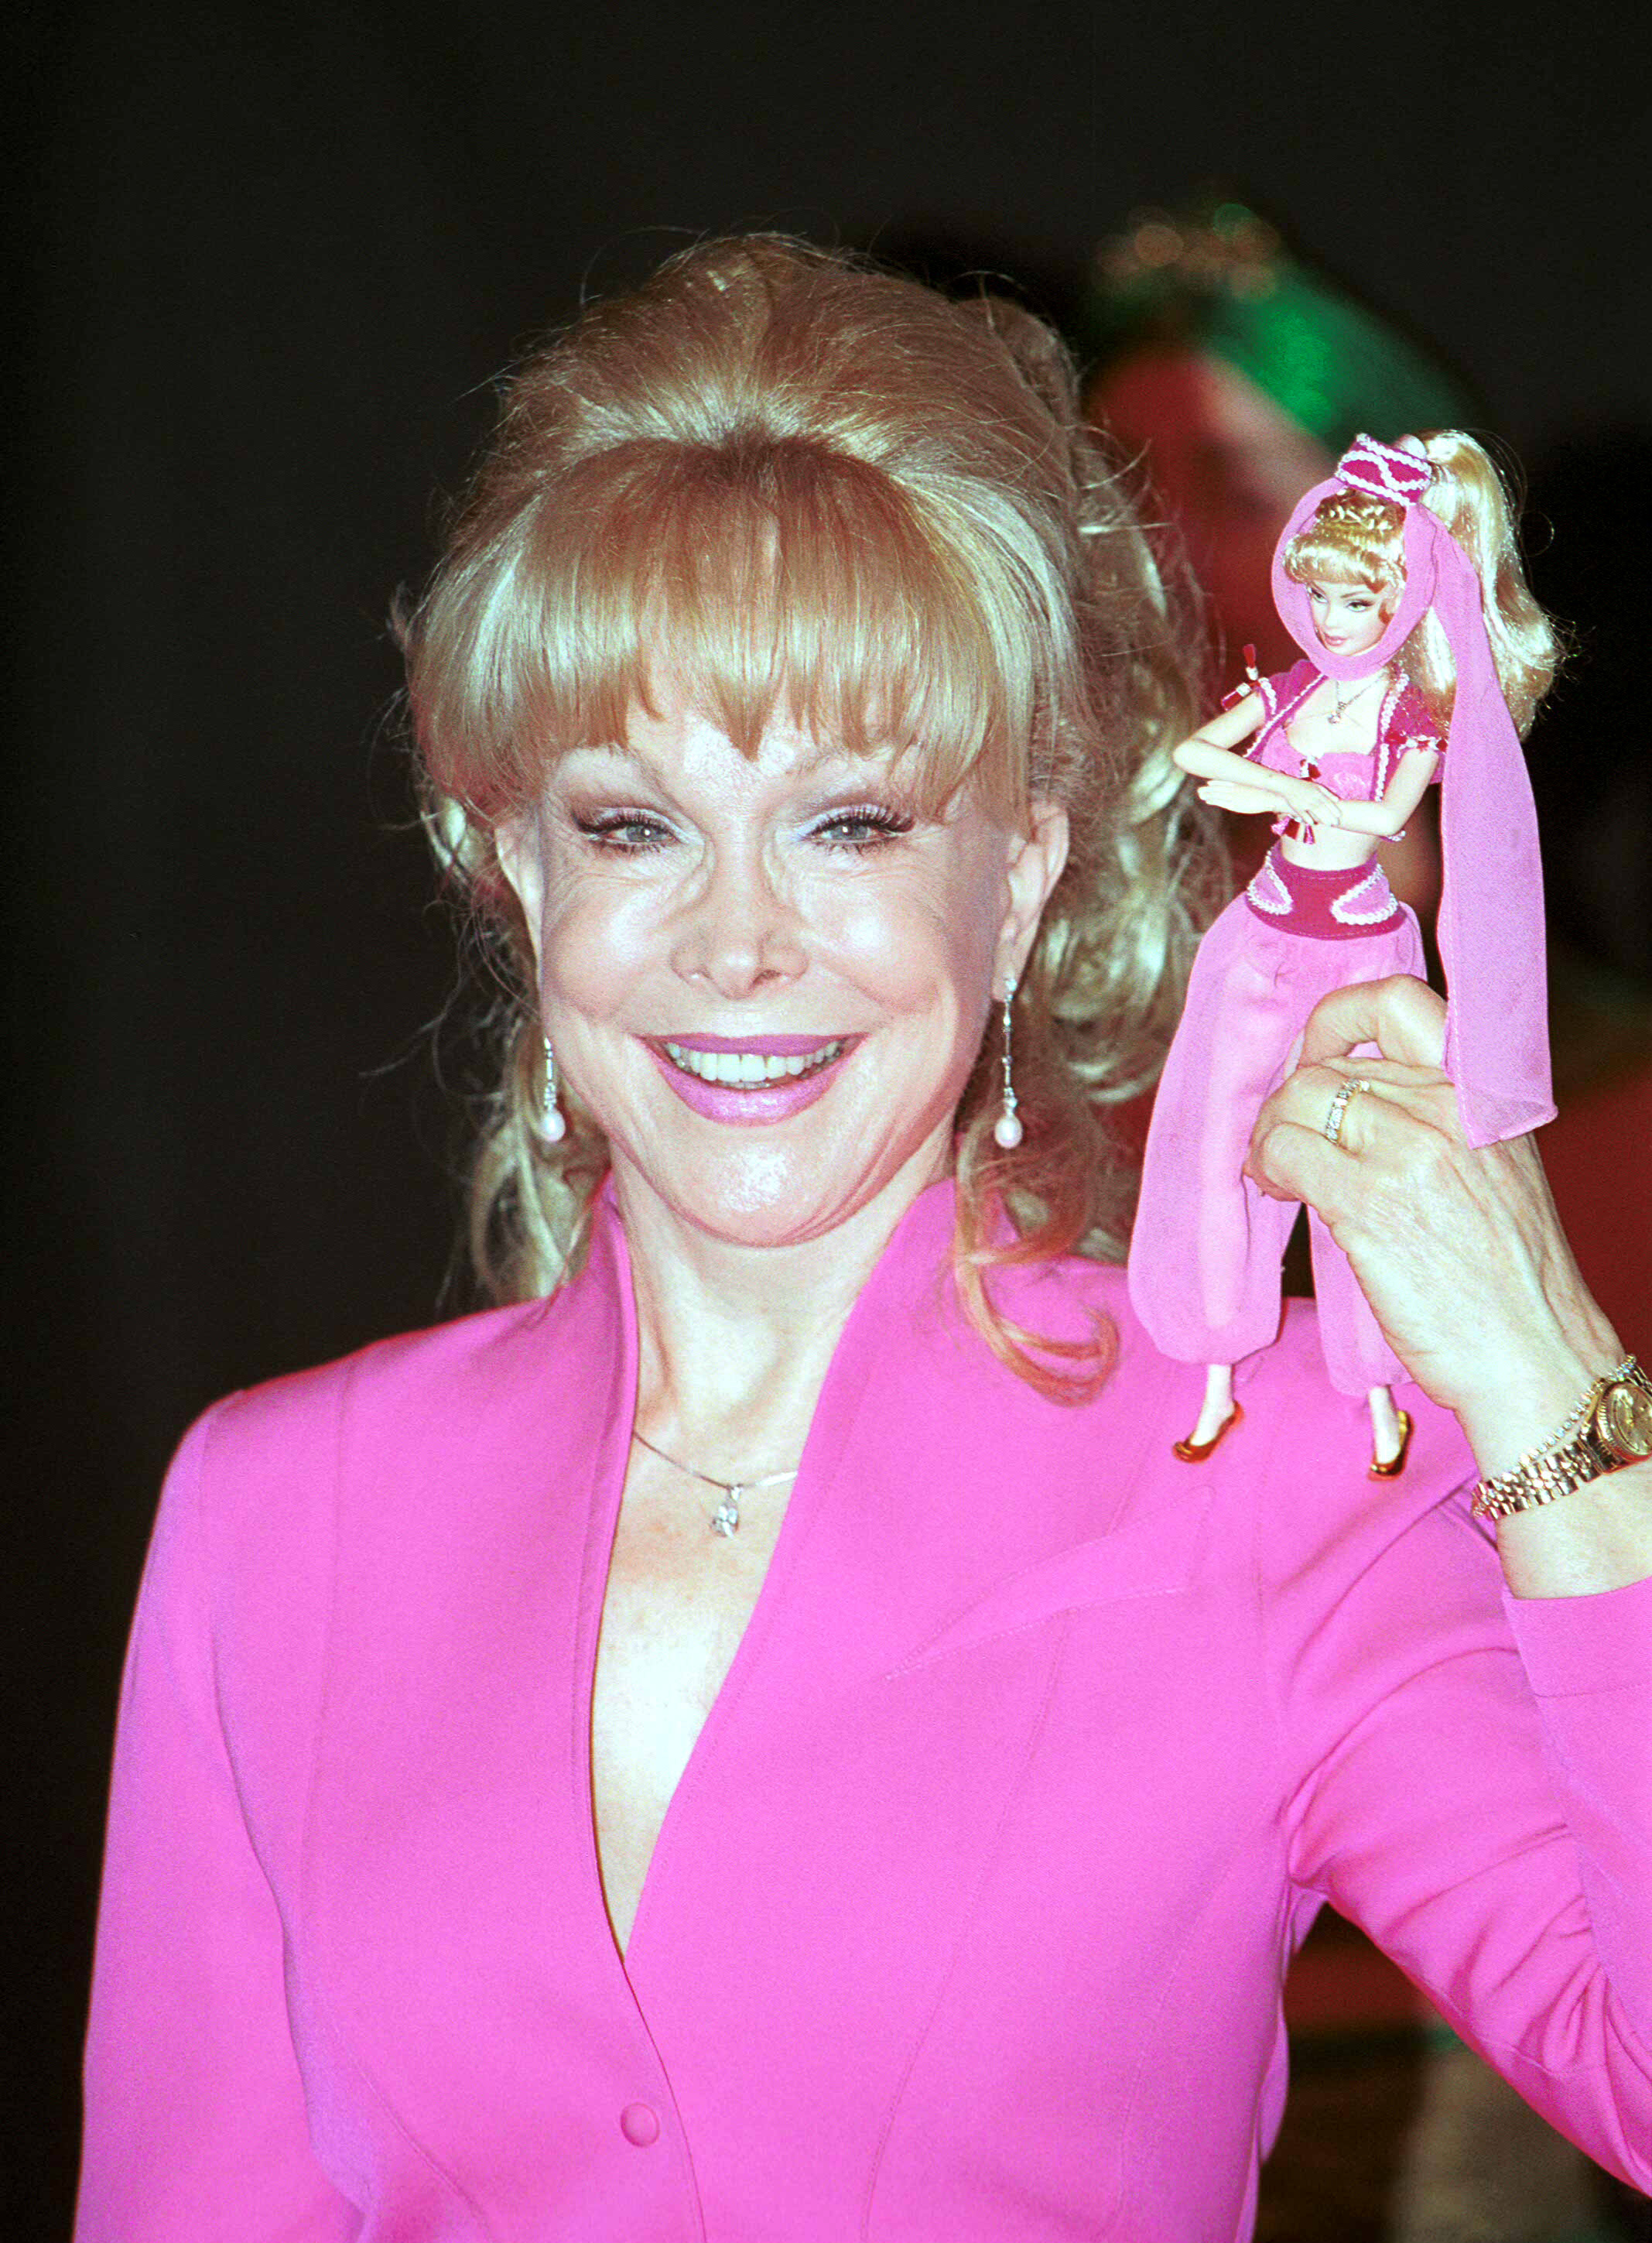 gallery Barbara eden